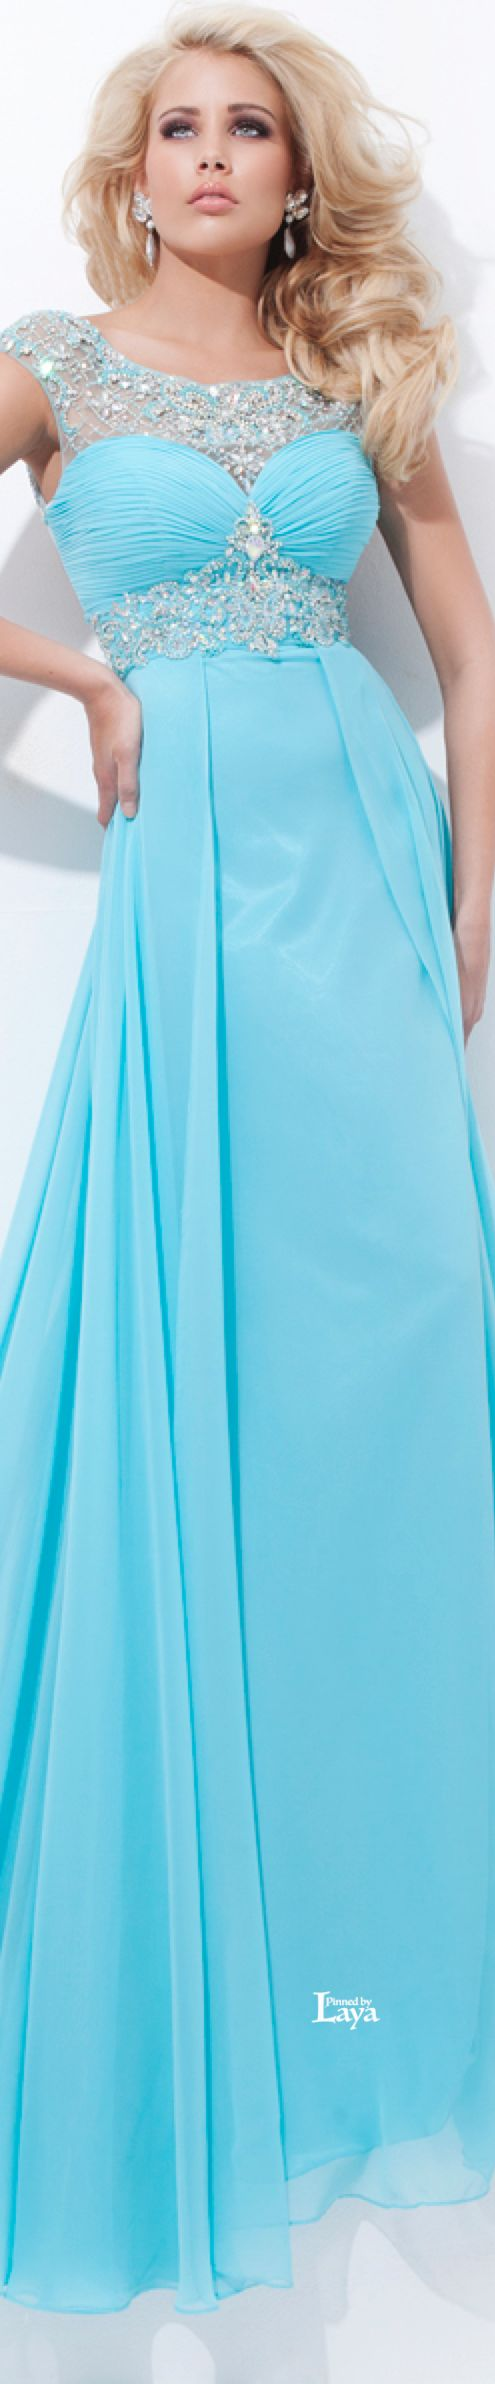 555 best Prom Dresses images on Pinterest | Evening gowns, Gown ...